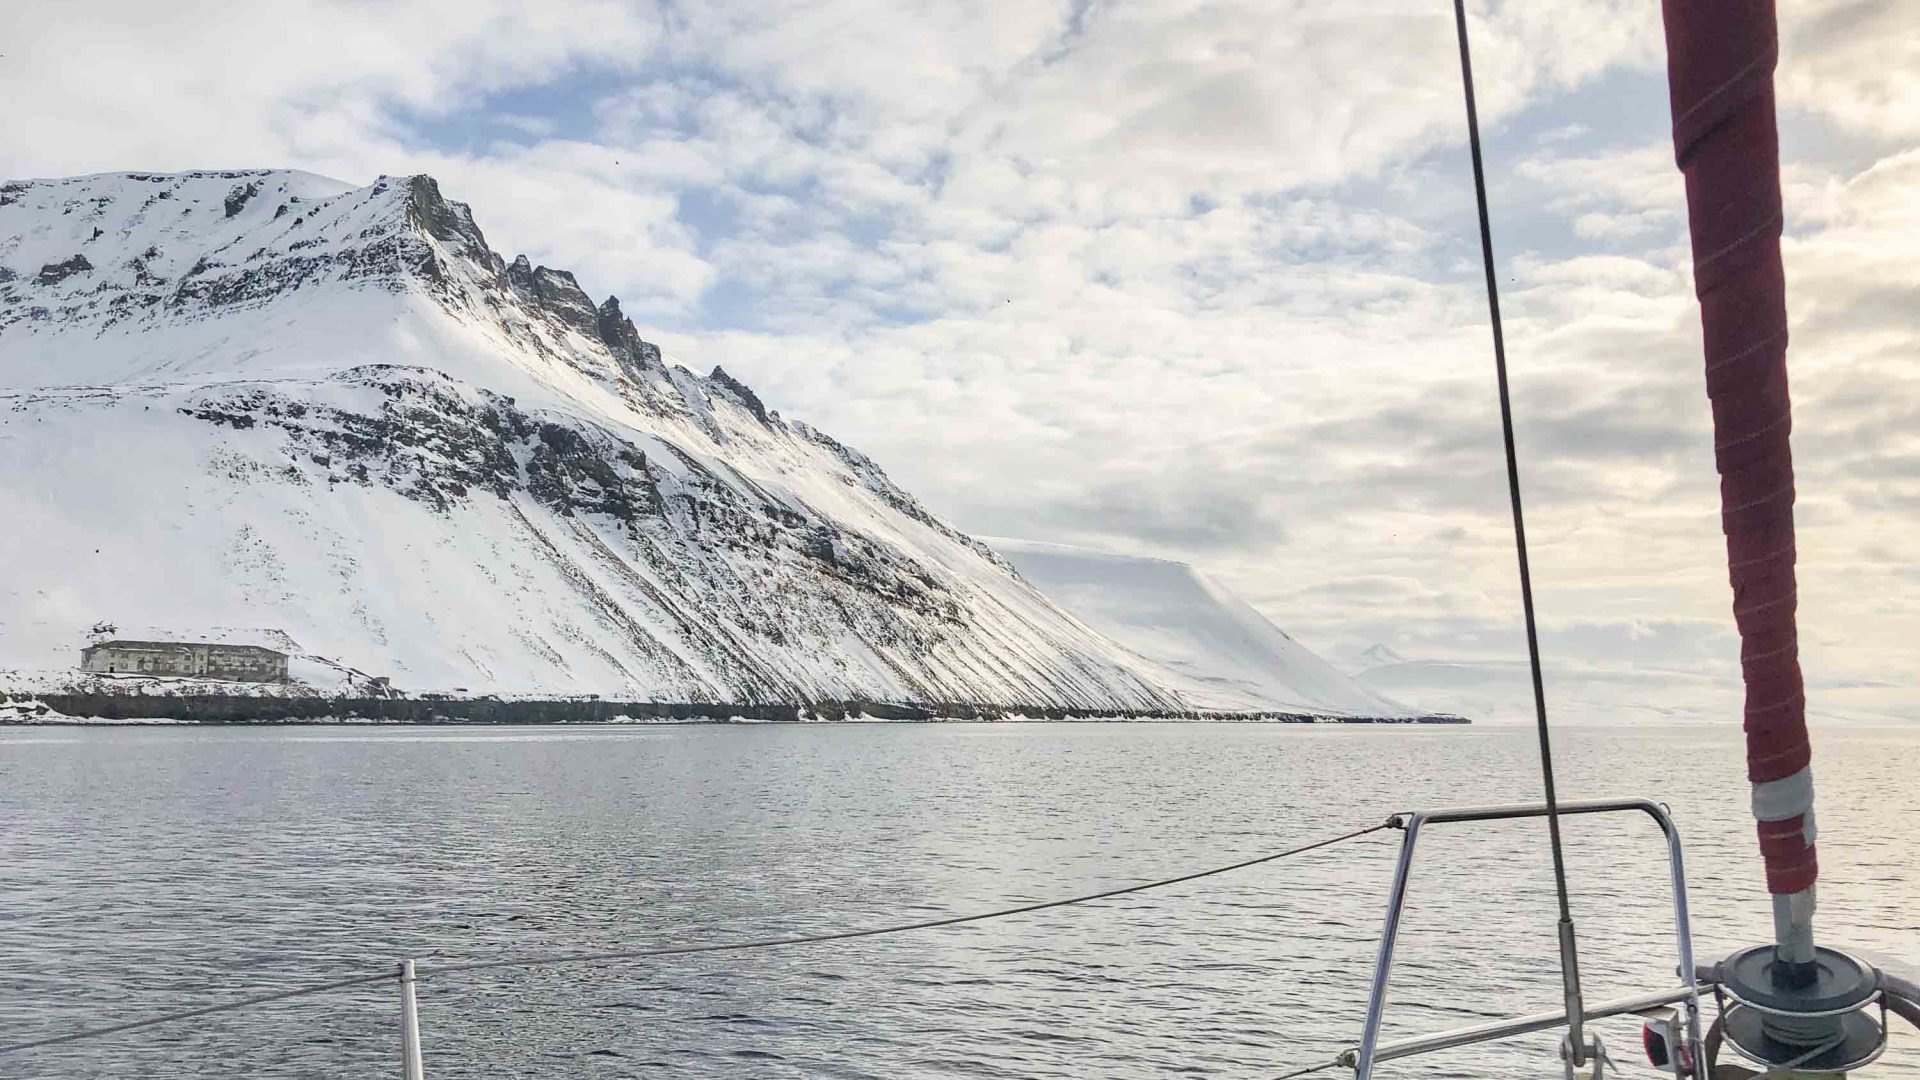 Views near Longyearbyen while out on the open water.